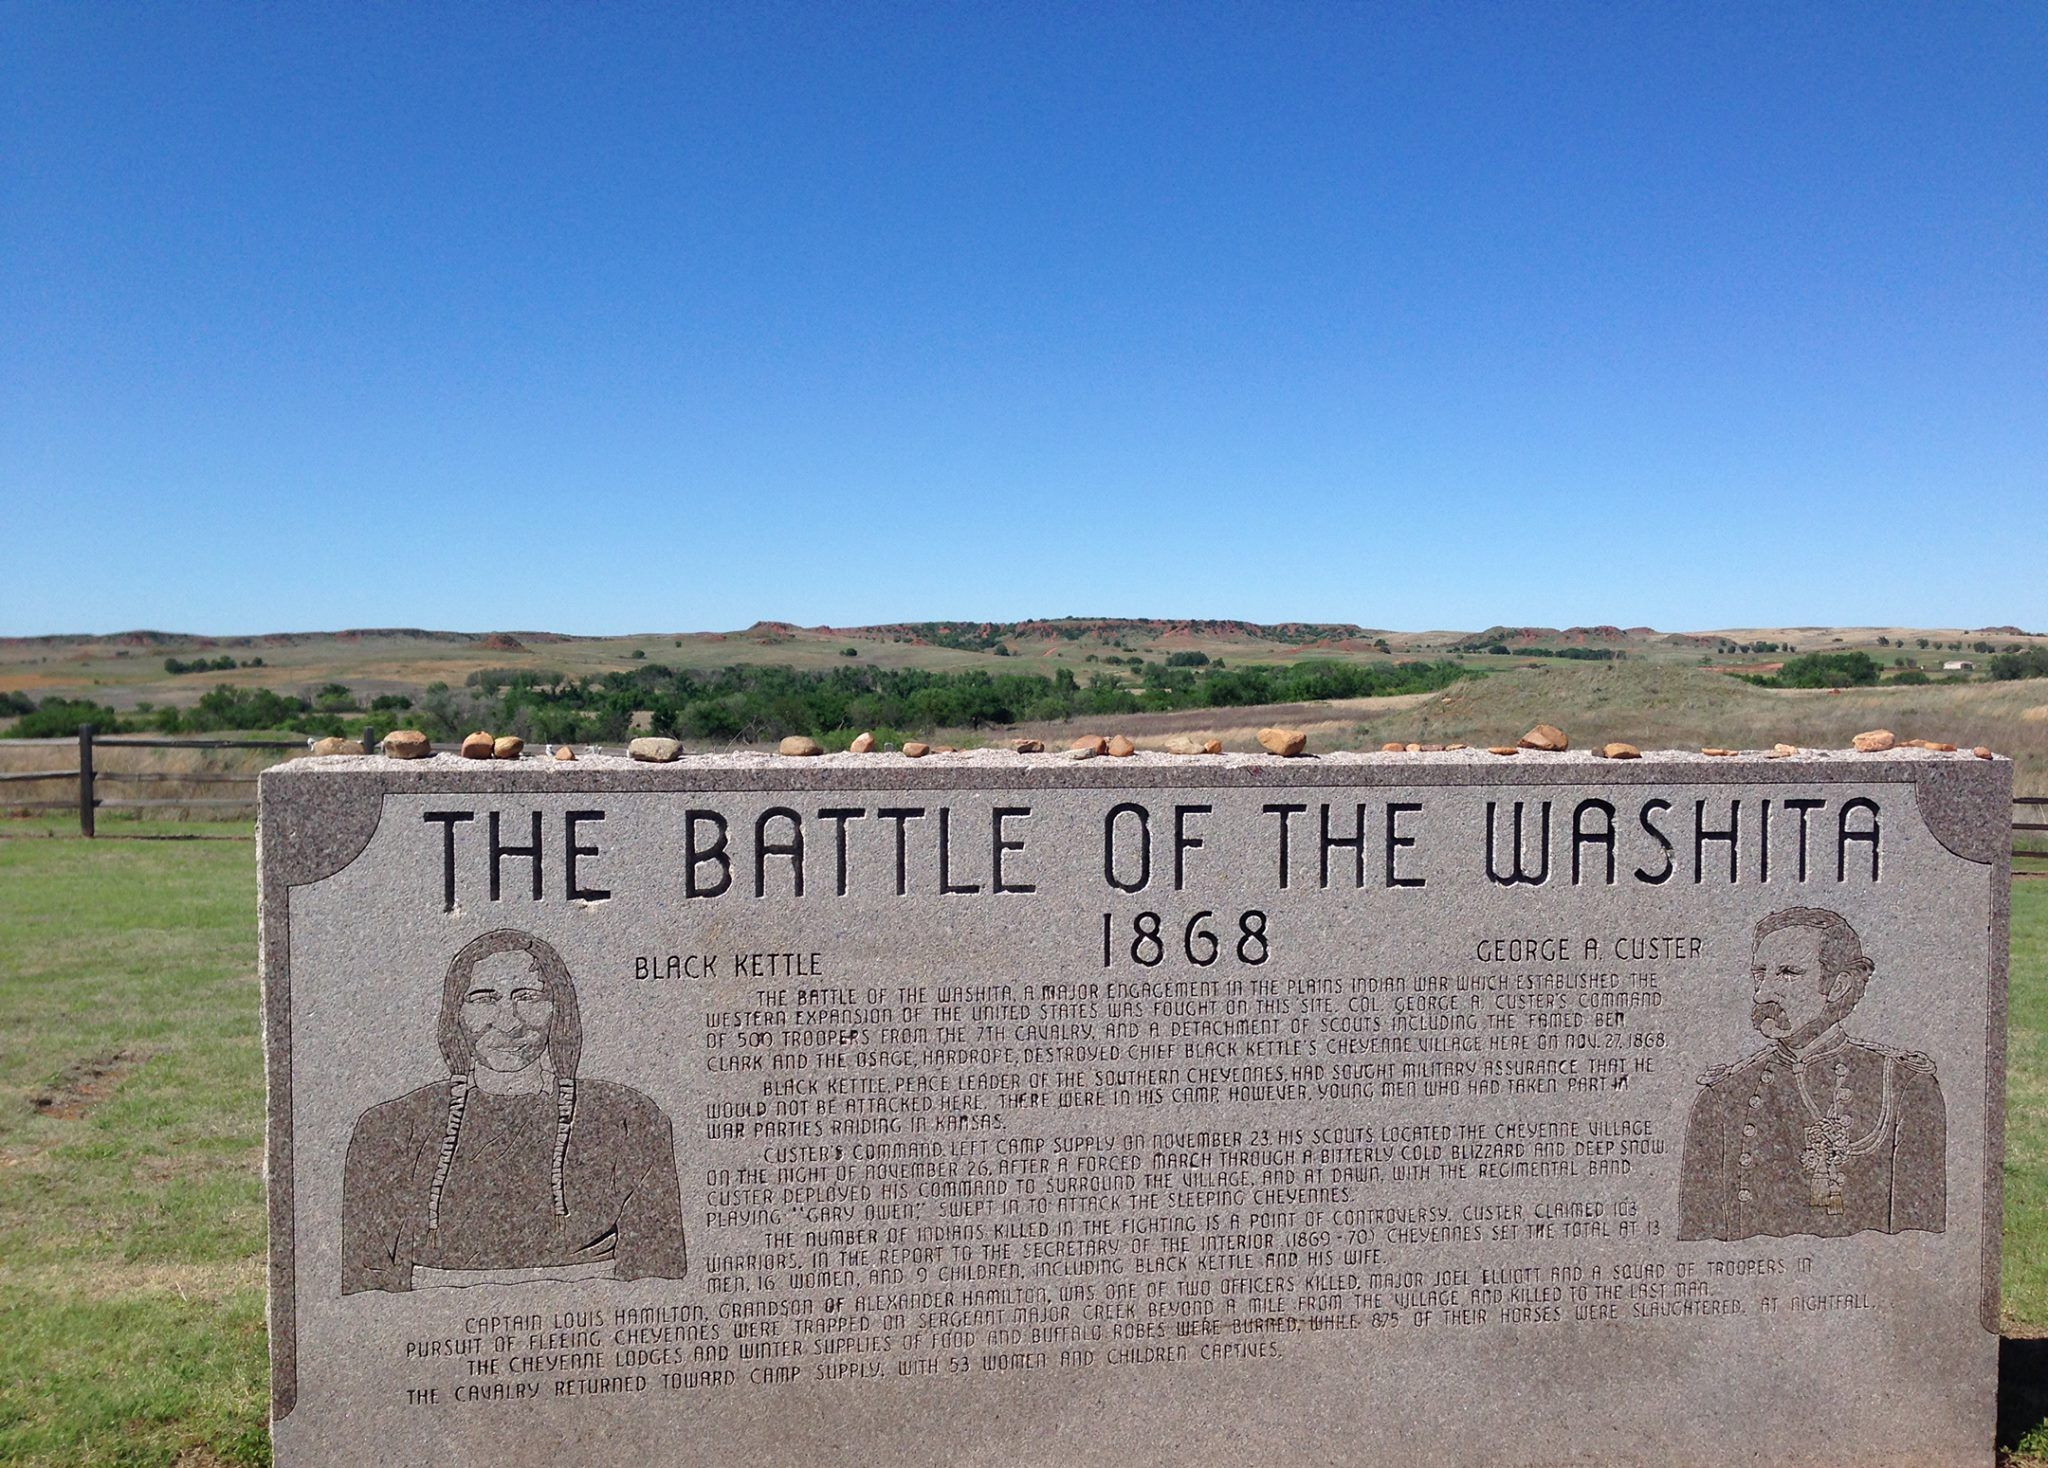 On November 27 1868 The Battle Of The Washita Occurred Near Present Day Cheyenne Oklahoma Without Bothering To Identify George Armstrong Custer Oklahoma Craigslist free classified ad posting services allow you to post personal ads, jobs and real estate. george armstrong custer